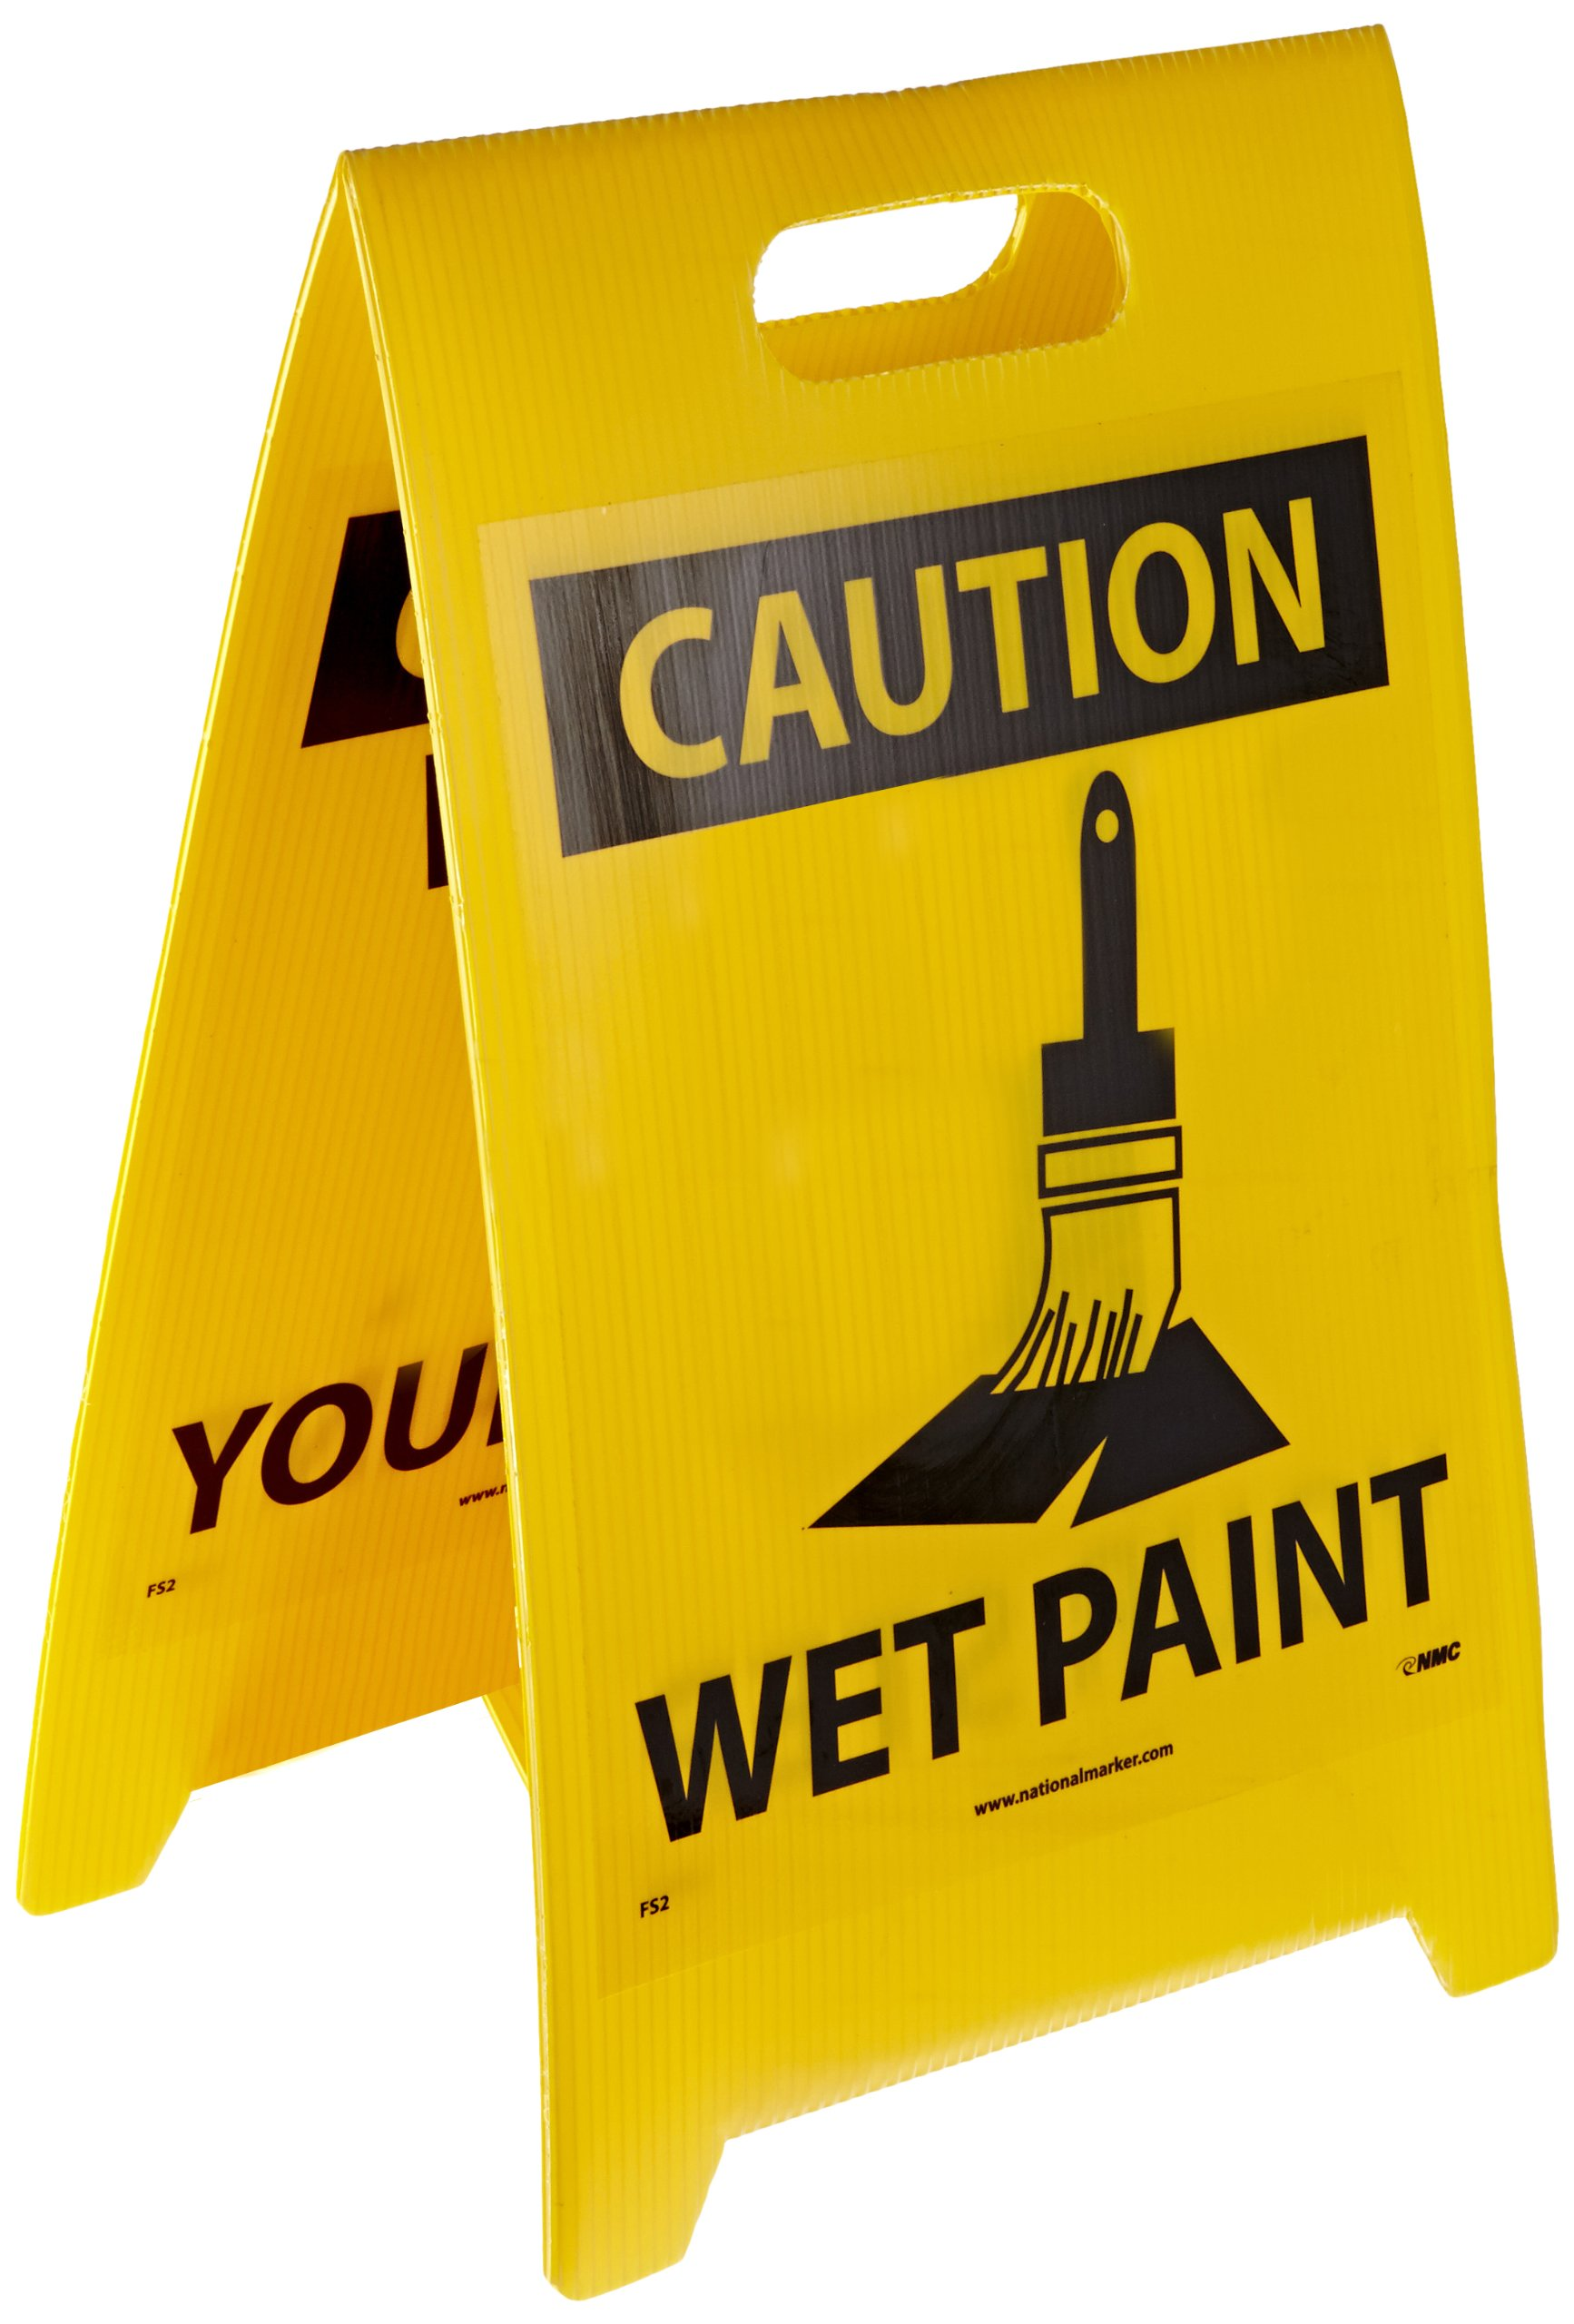 NMC FS2 Double Sided Floor Sign, Legend ''CAUTION - WATCH YOUR STEP WET PAINT'' with Graphic, 12'' Length x 20'' Height, Coroplast, Black on Yellow